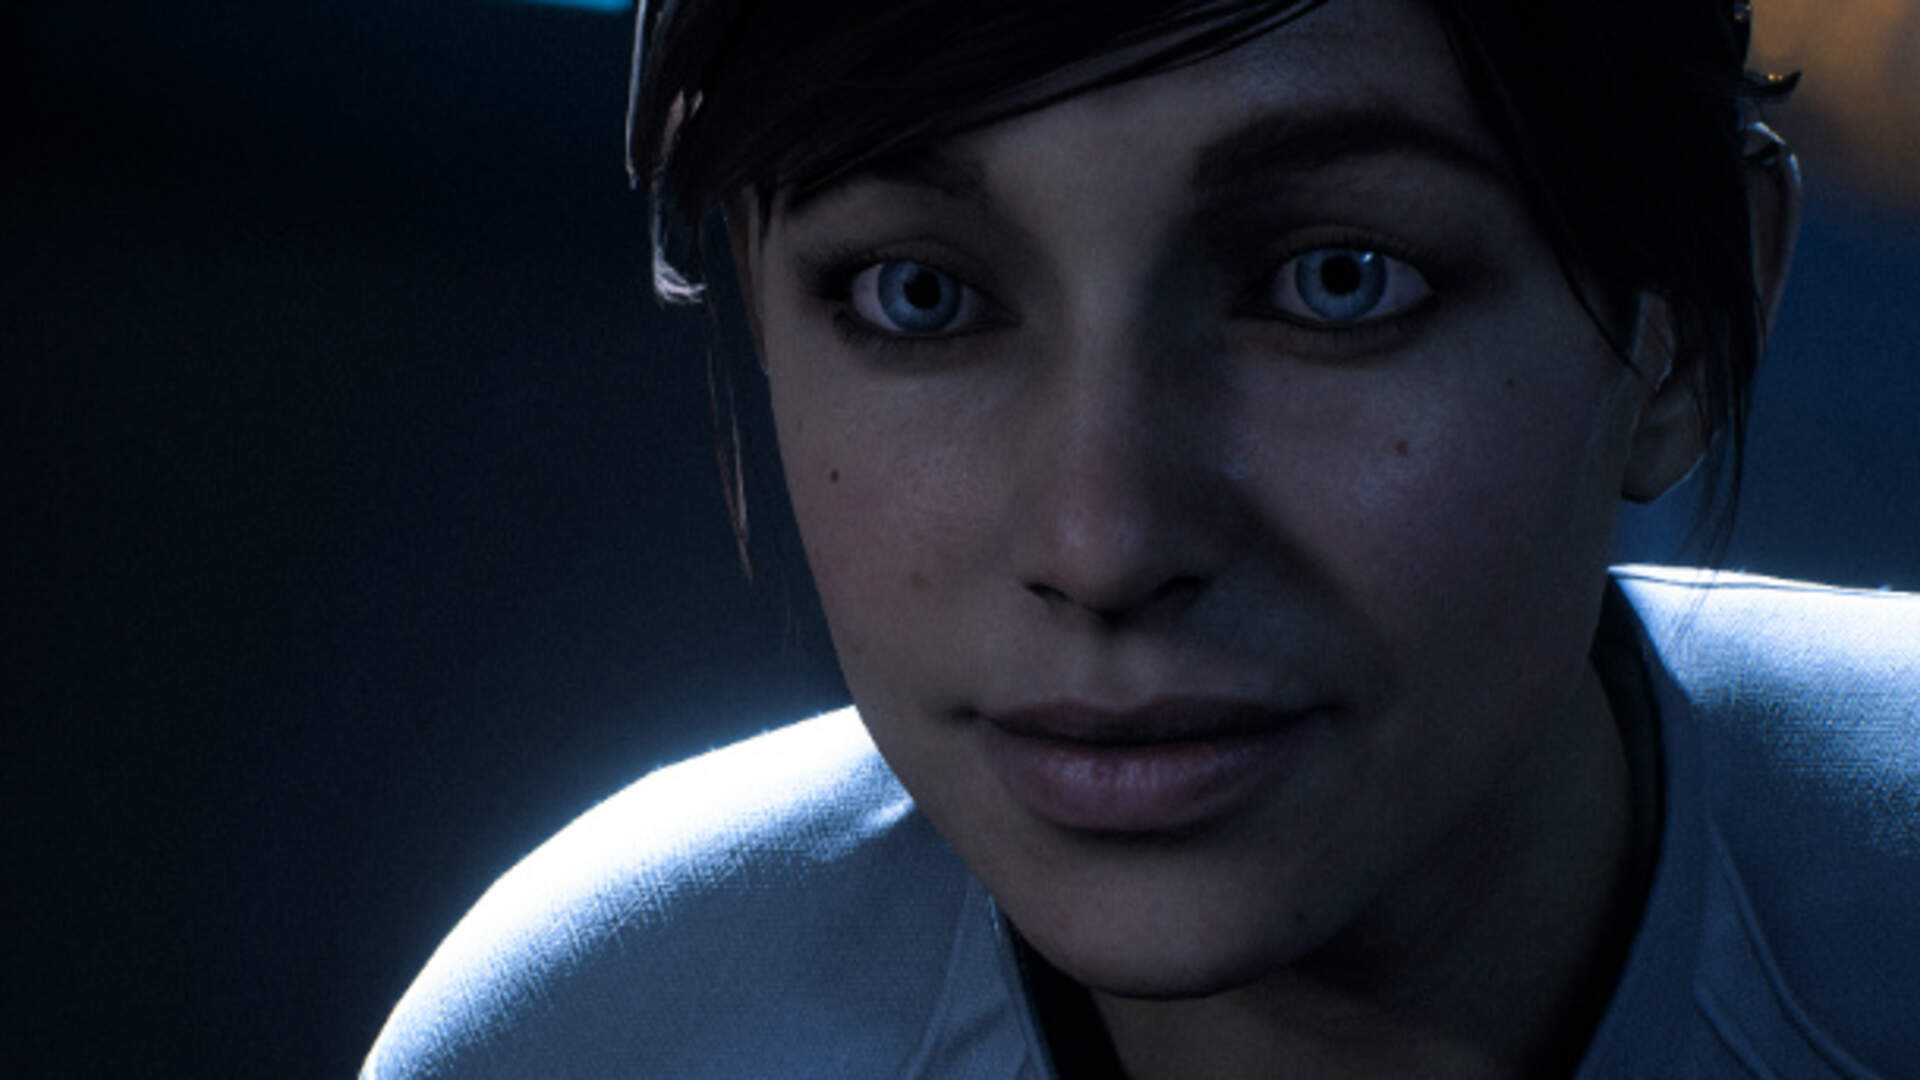 Bioware Fixes Mass Effect Andromeda's Dead Eyes In Latest Patch